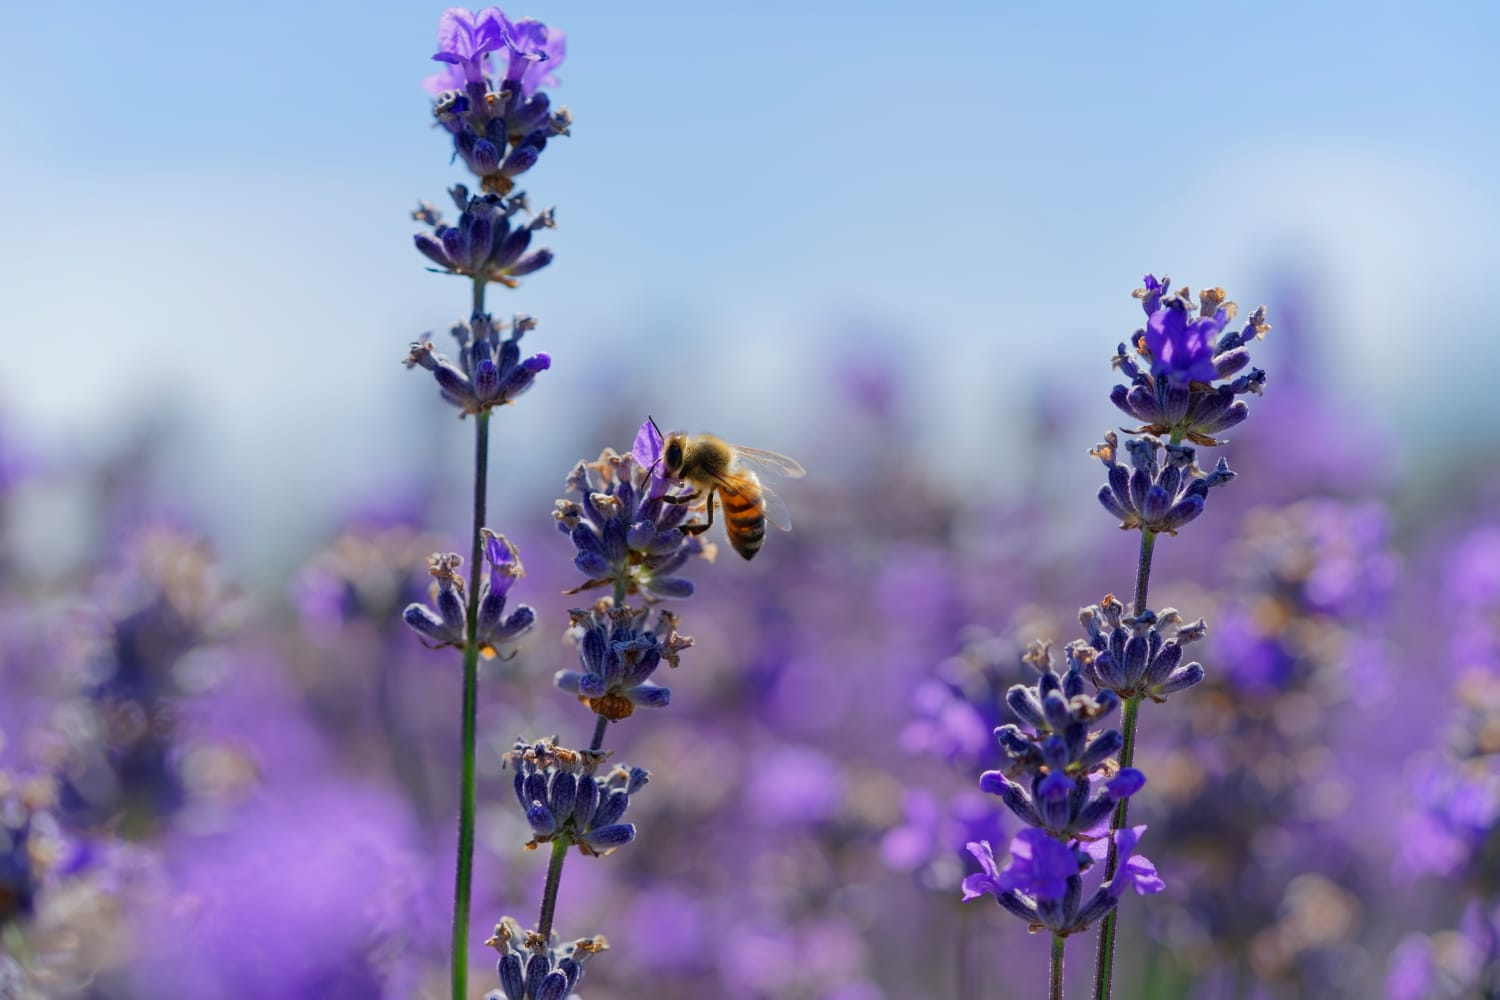 The Best Autumn Flowers To Help Bees, According To Experts